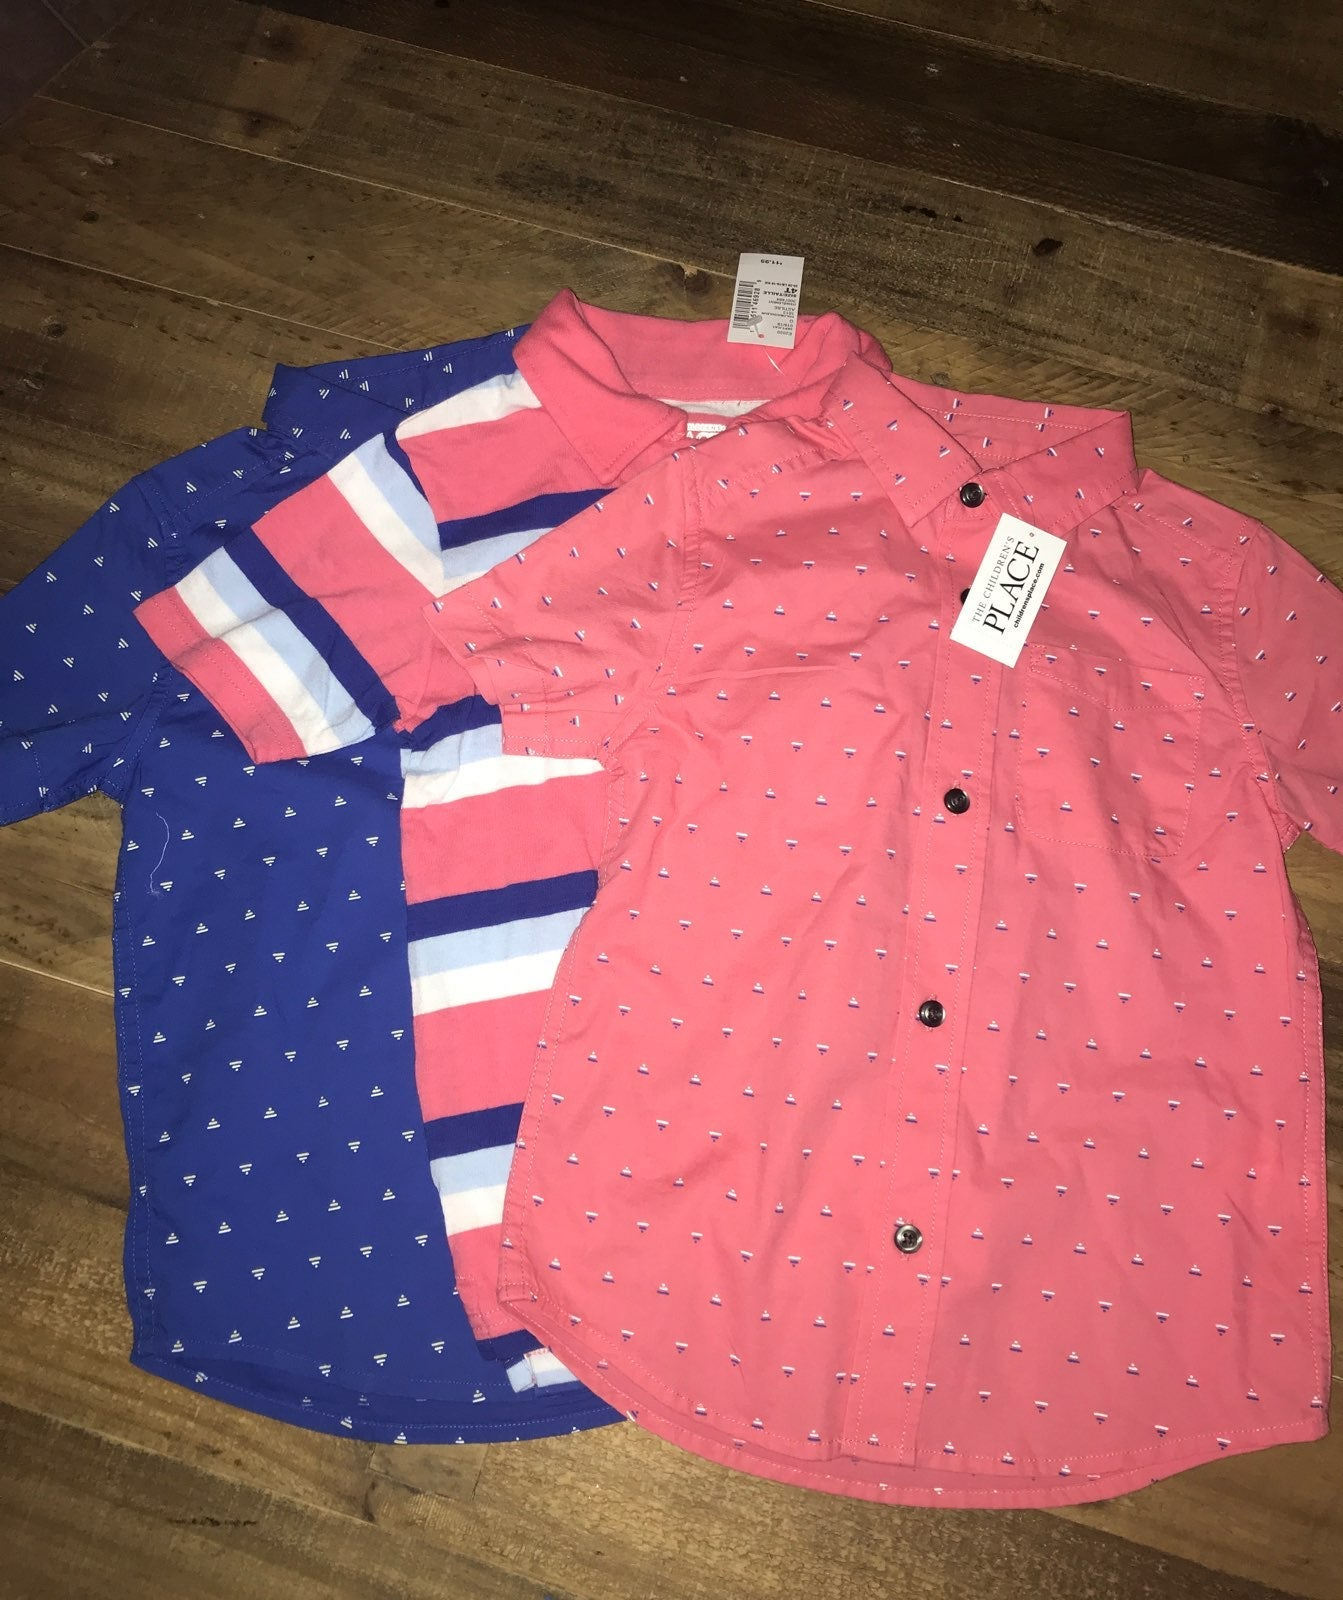 3-Pack Children's Place Boys Shirts 4T